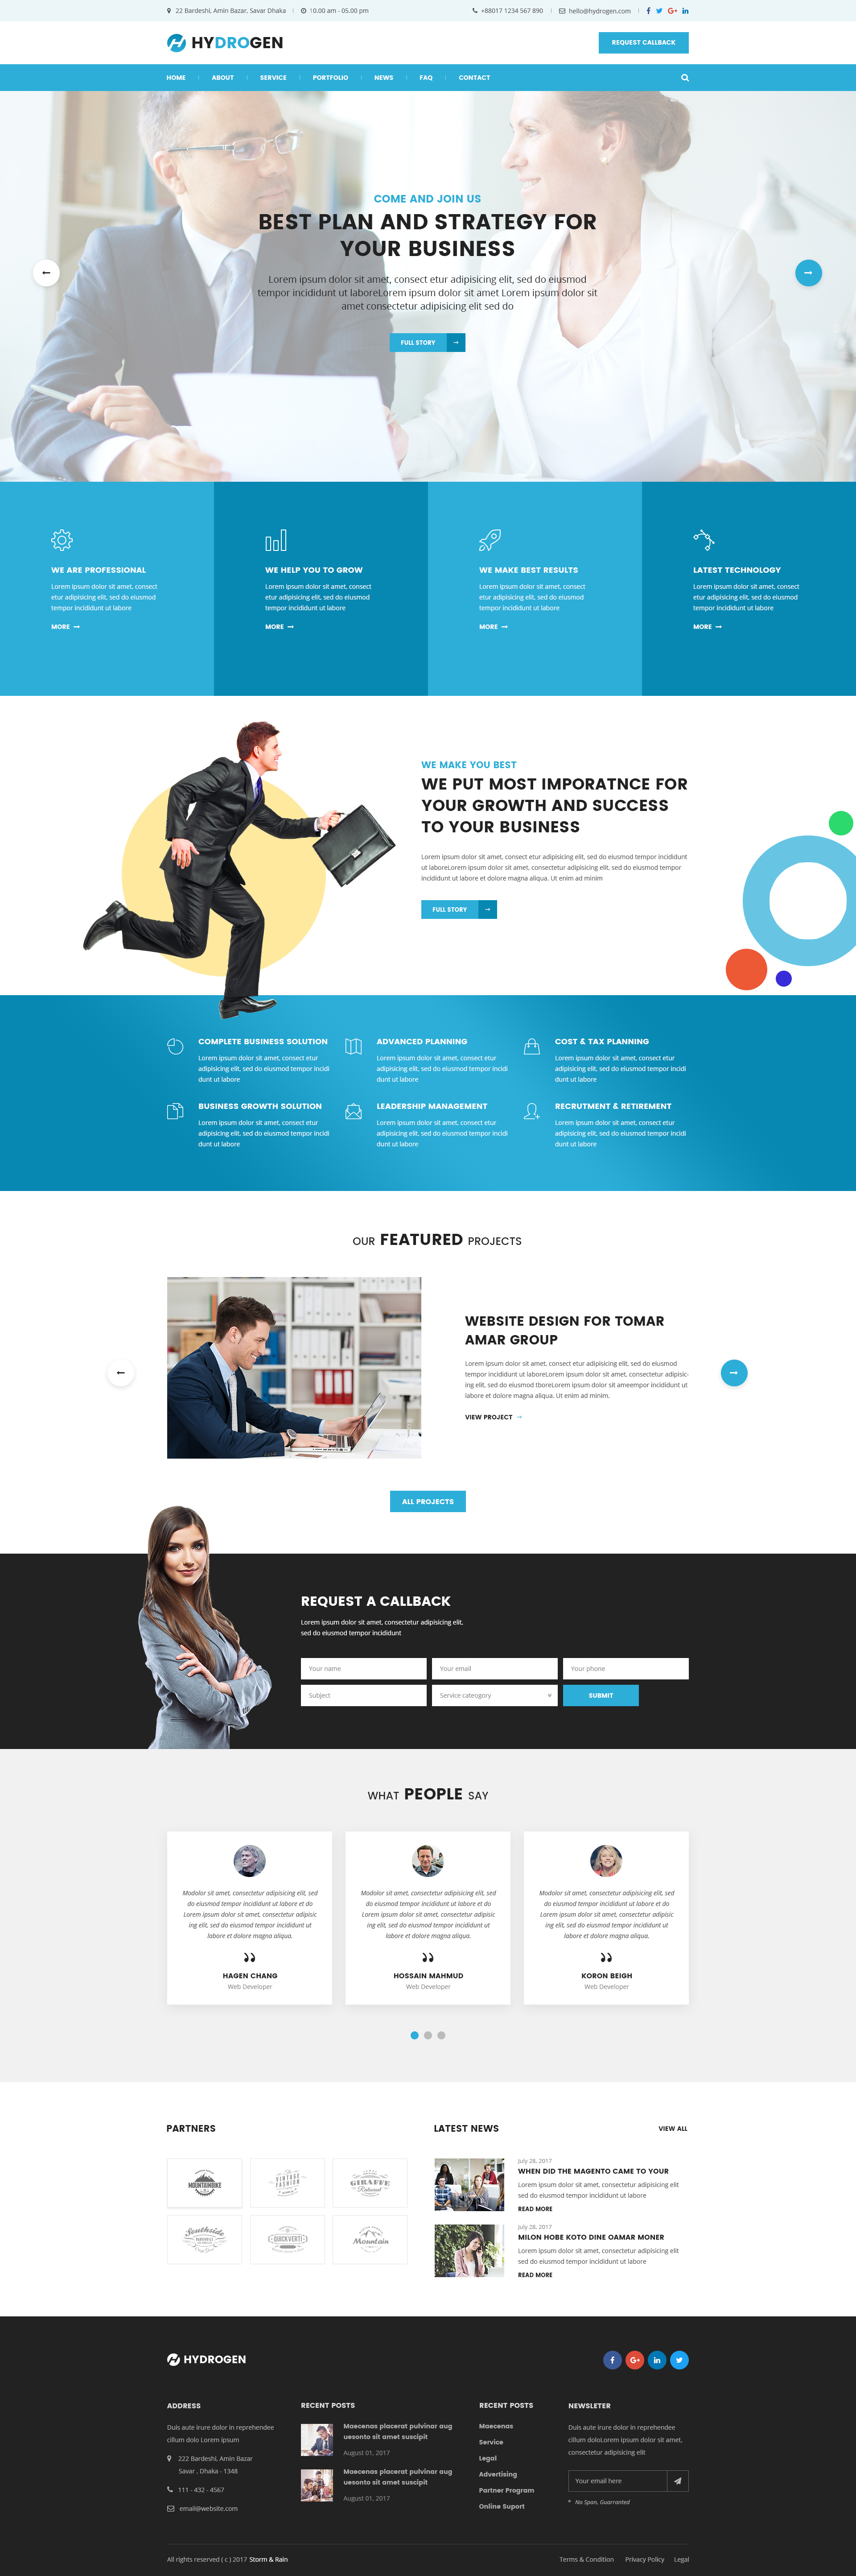 Hydrogen corporate business website psd template by stormandrain website psd template business corporate preview00previewg preview01home01g preview02home02g accmission Image collections